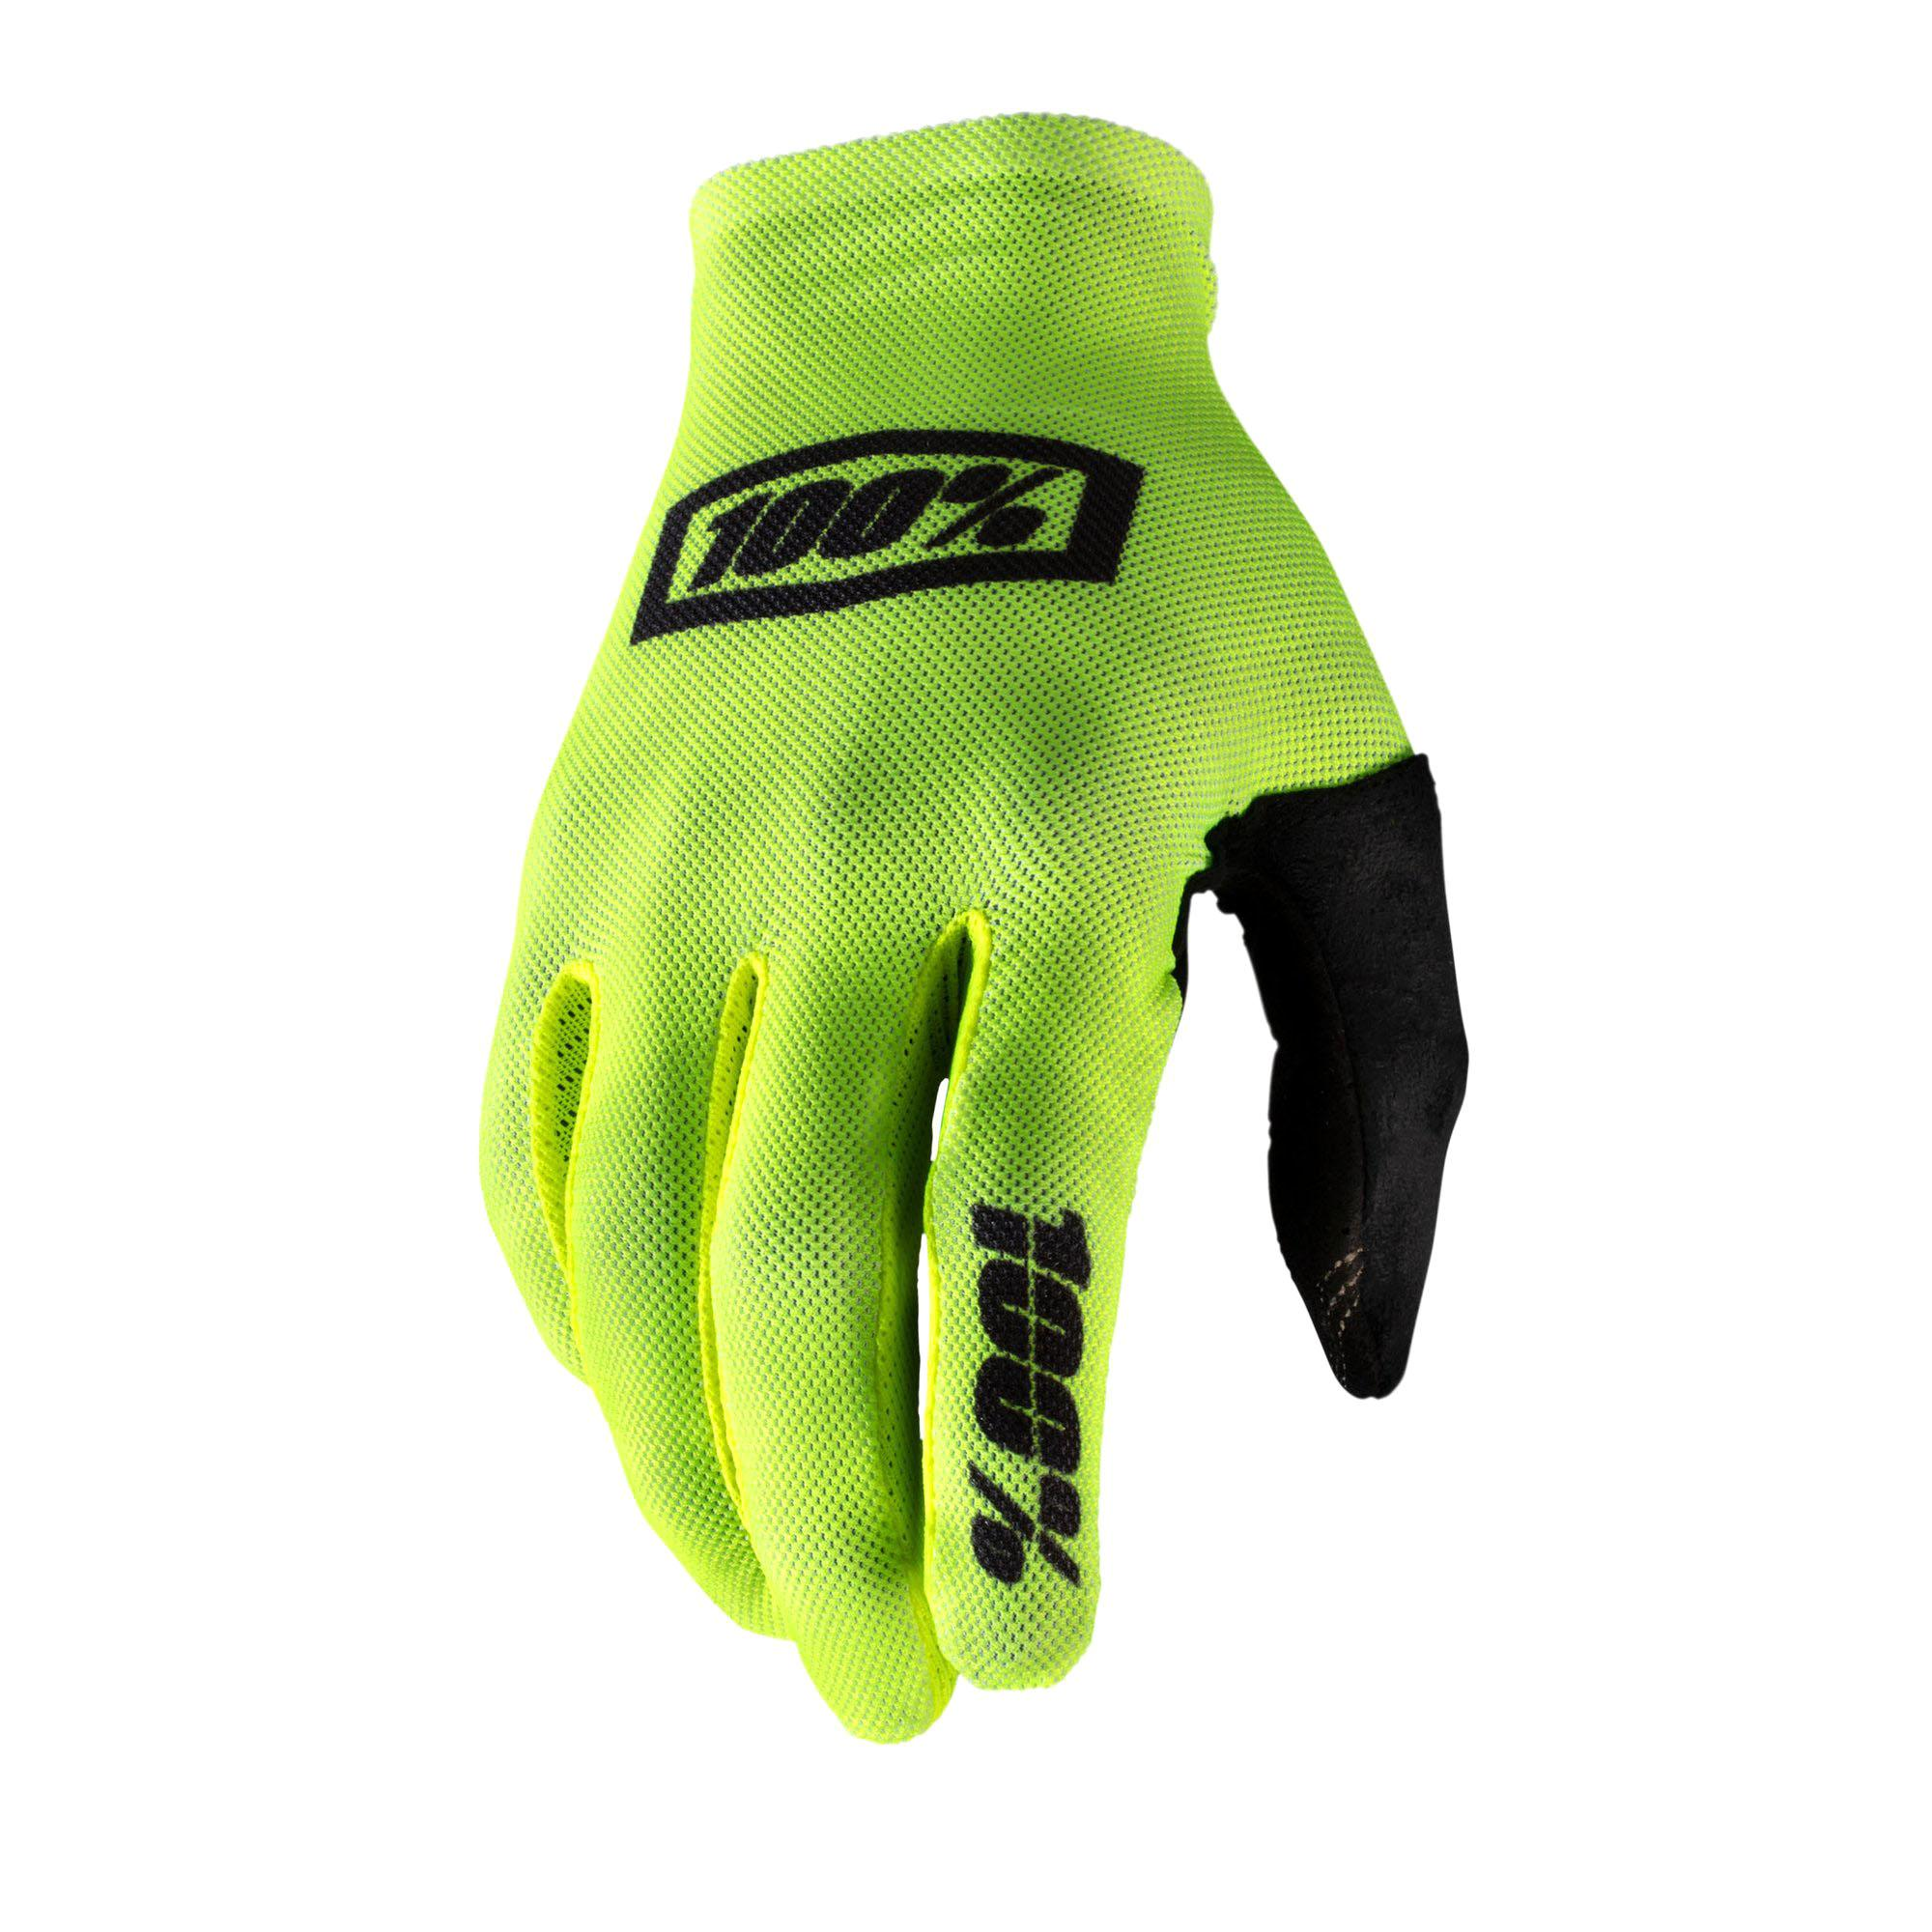 CELIUM Glove Fluo Yellow/Black